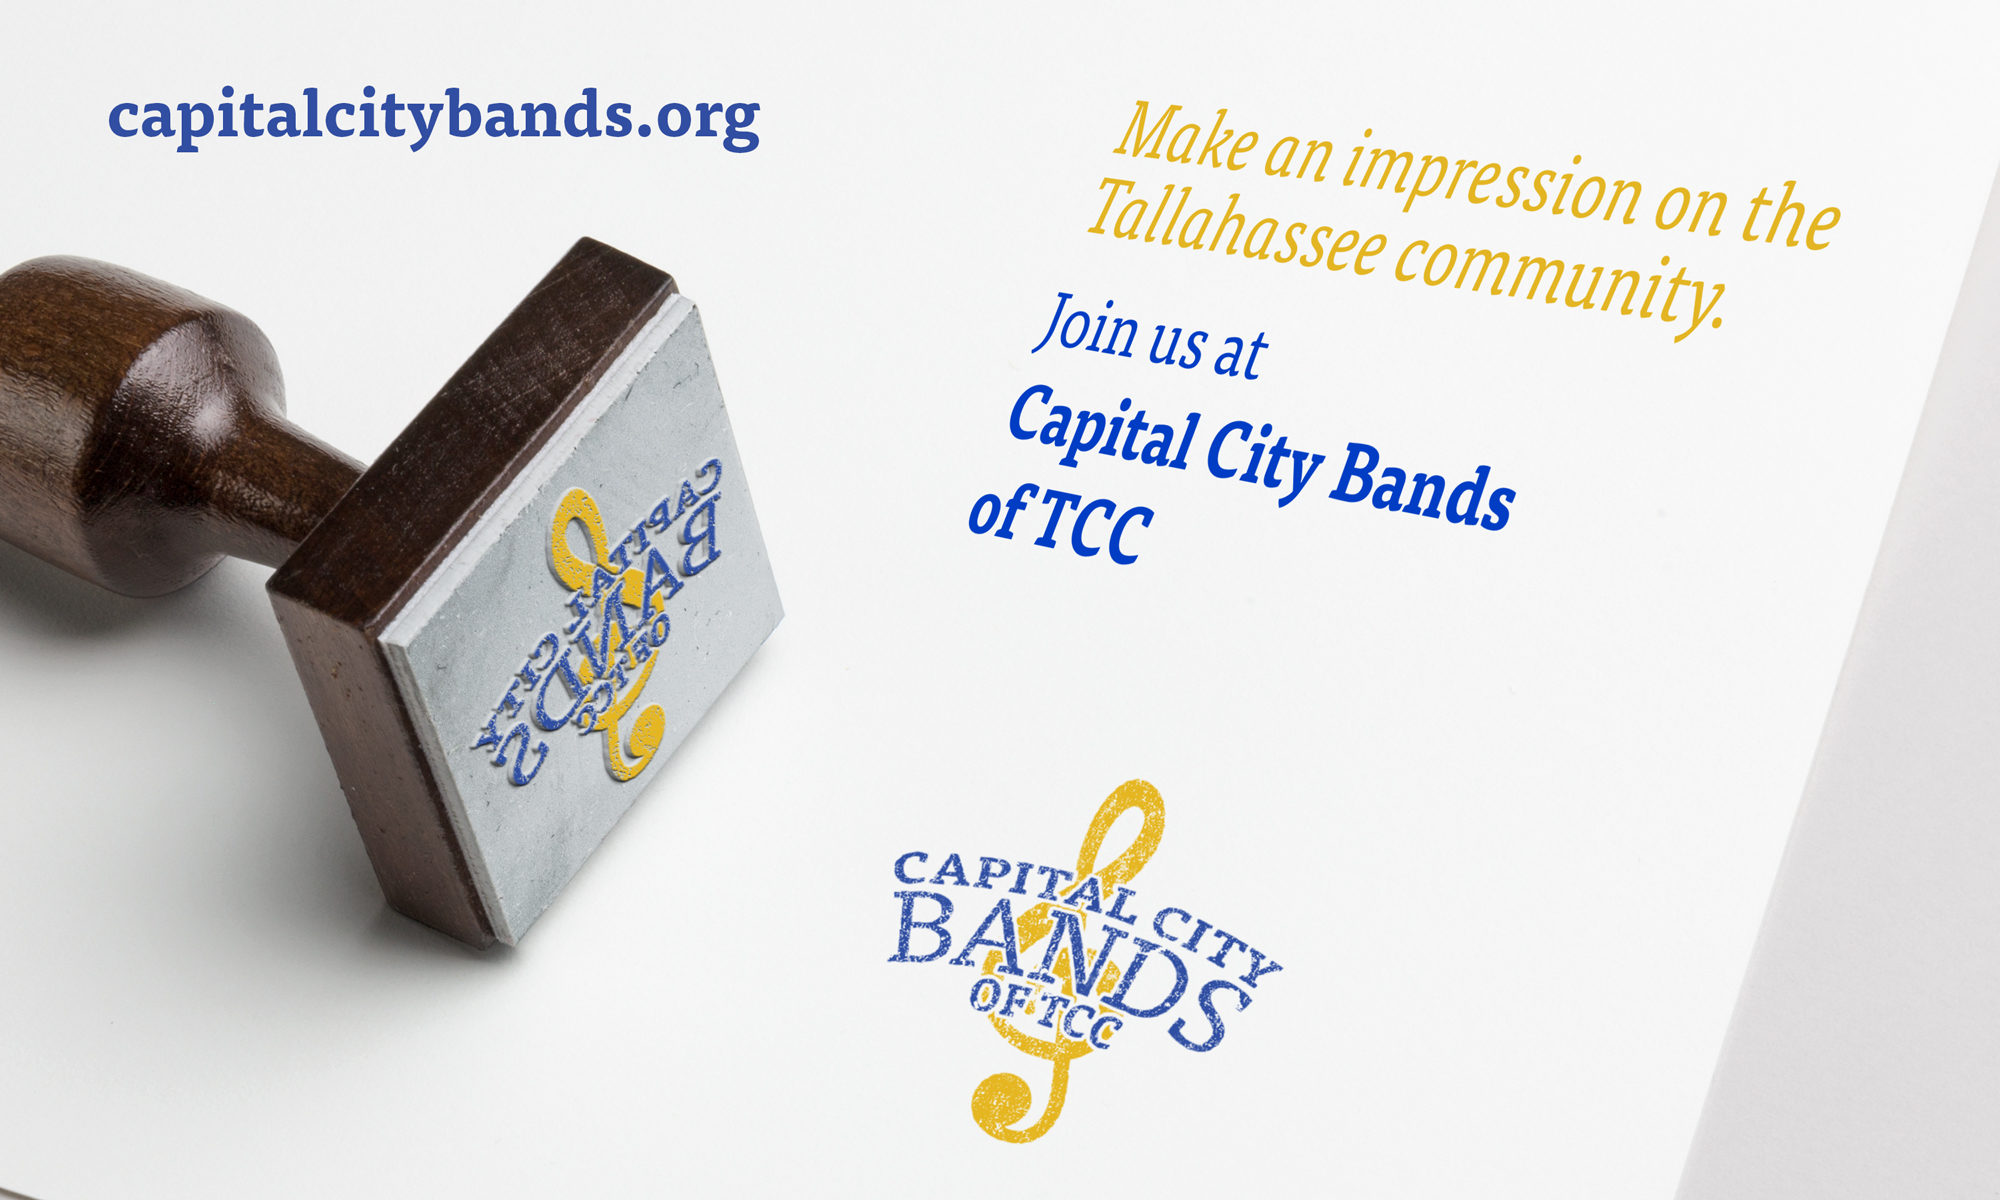 Capital City Bands